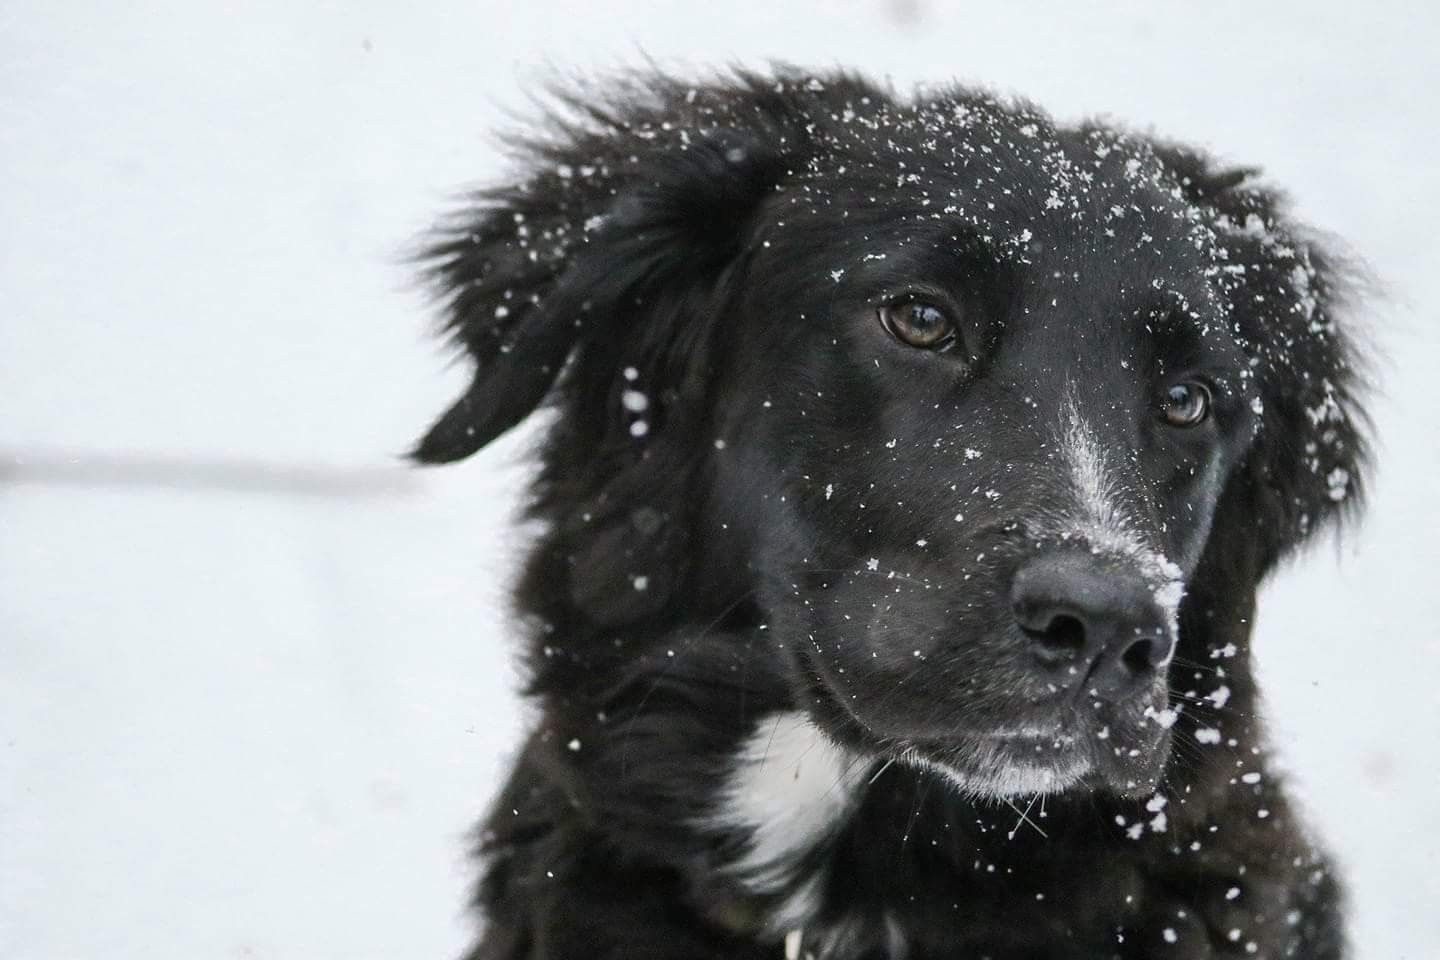 Piercing bump with pus  Pin by Barbara rathmanner on Hunde im schnee   Pinterest